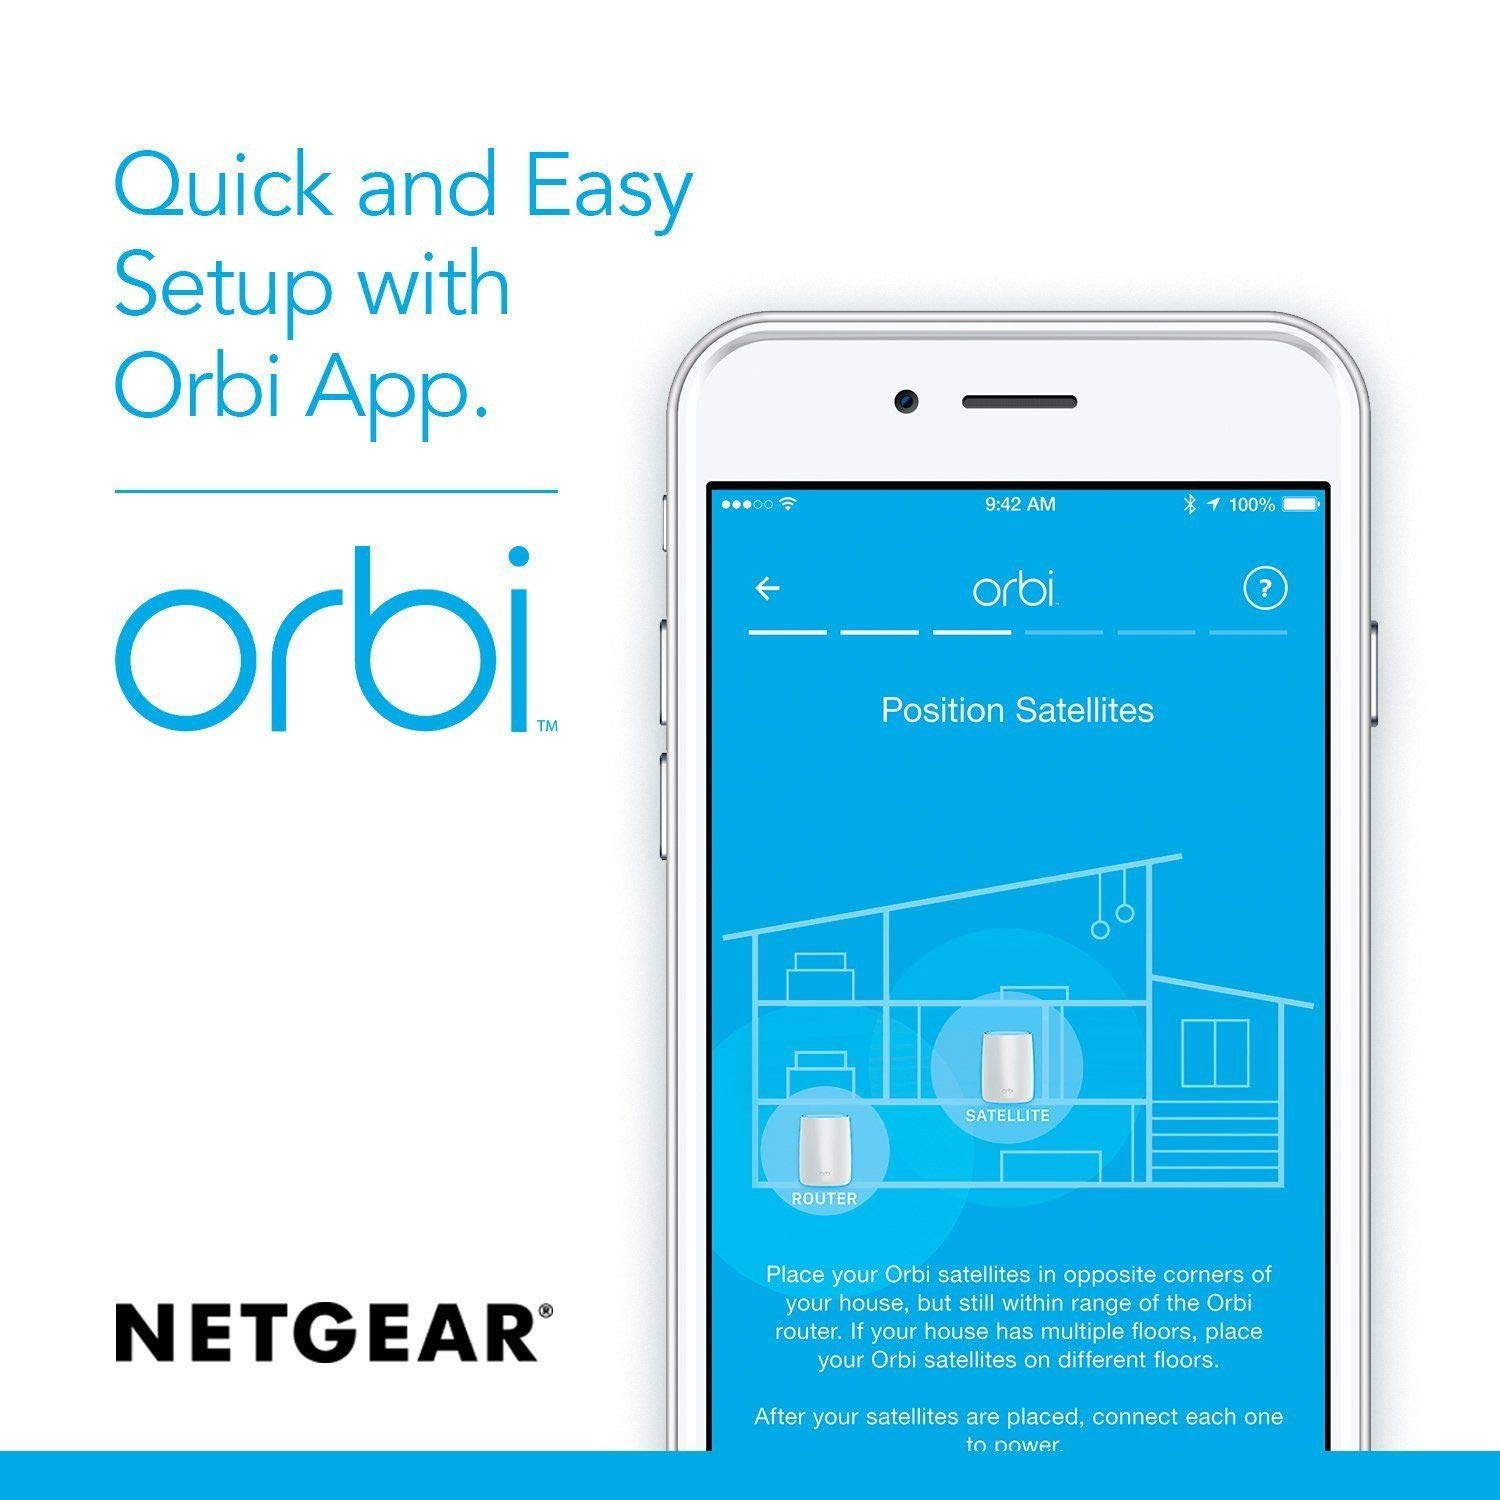 NETGEAR Orbi WiFi System: AC2200 Tri Band Home Network - Router & 2X Wall  Plug Satellites  Up to 5,000 sq ft of WiFi Coverage (RBK33)